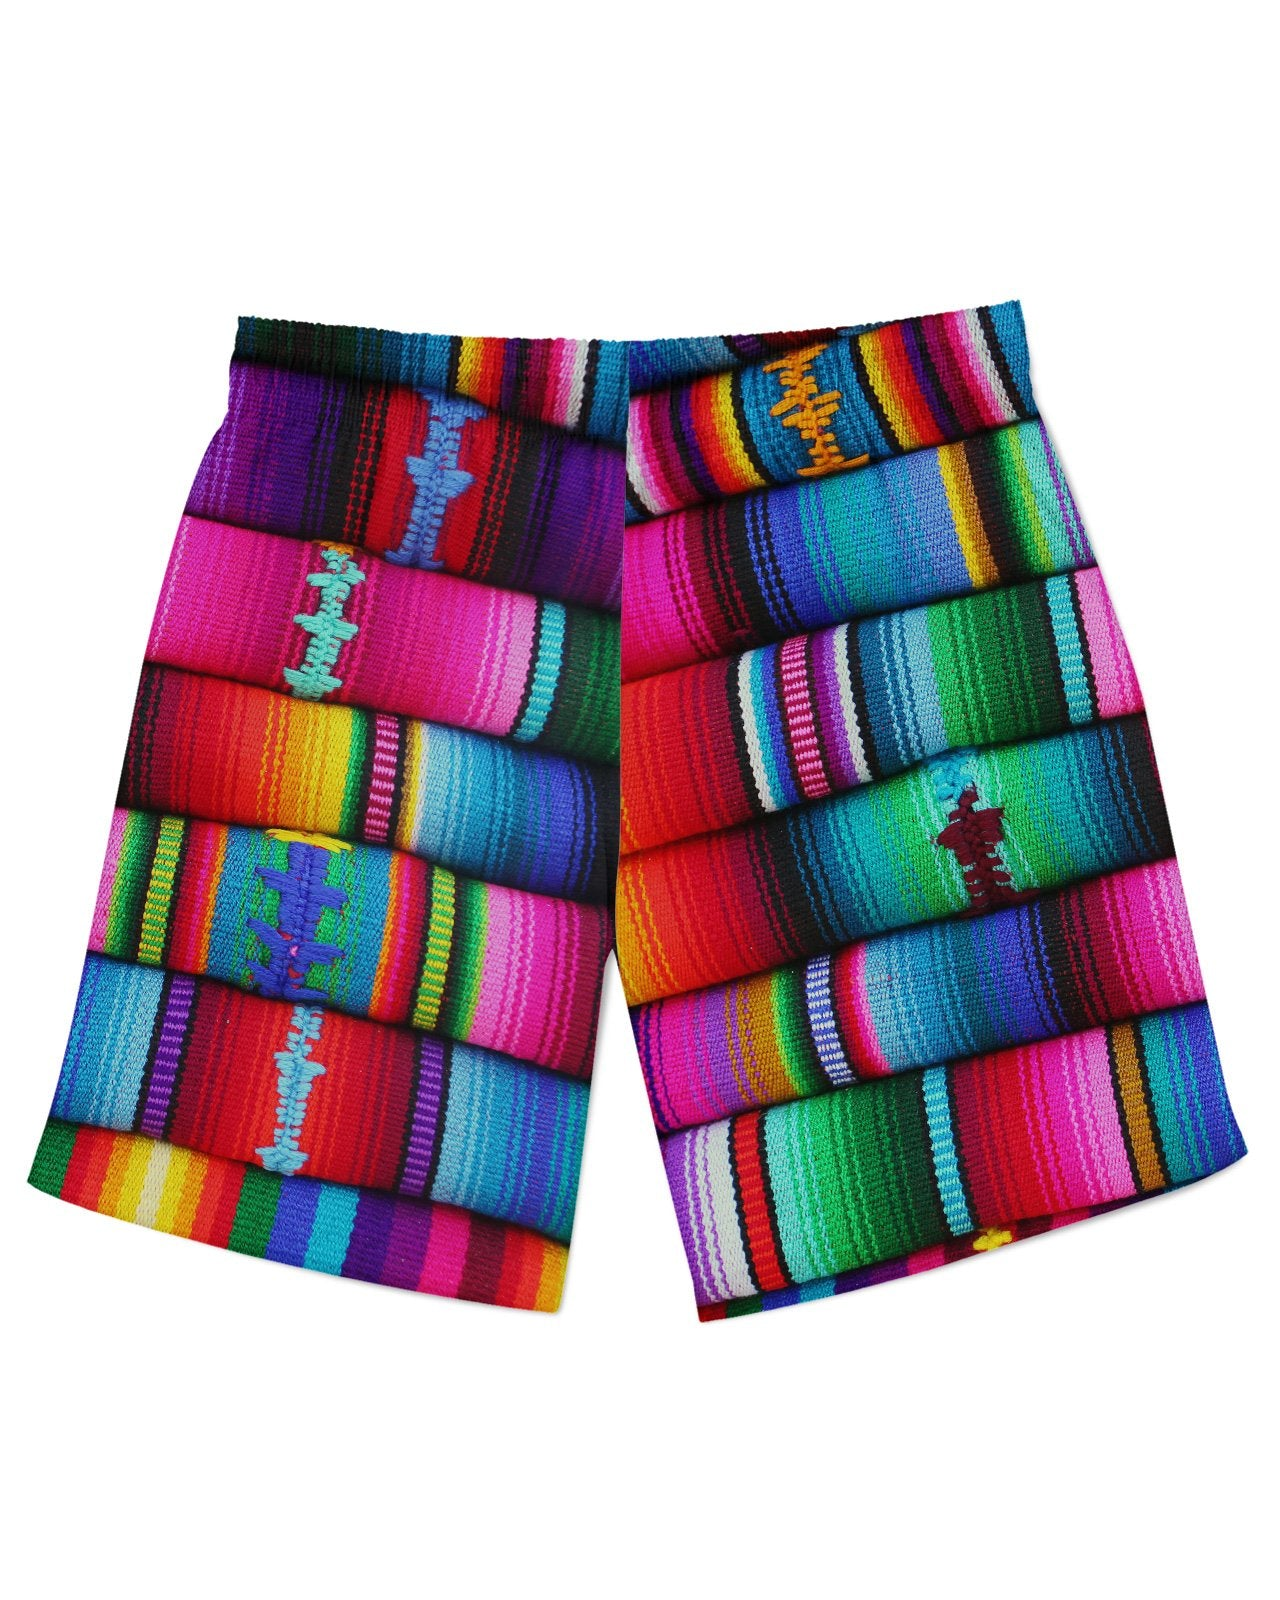 Mexican Blankets Athletic Shorts